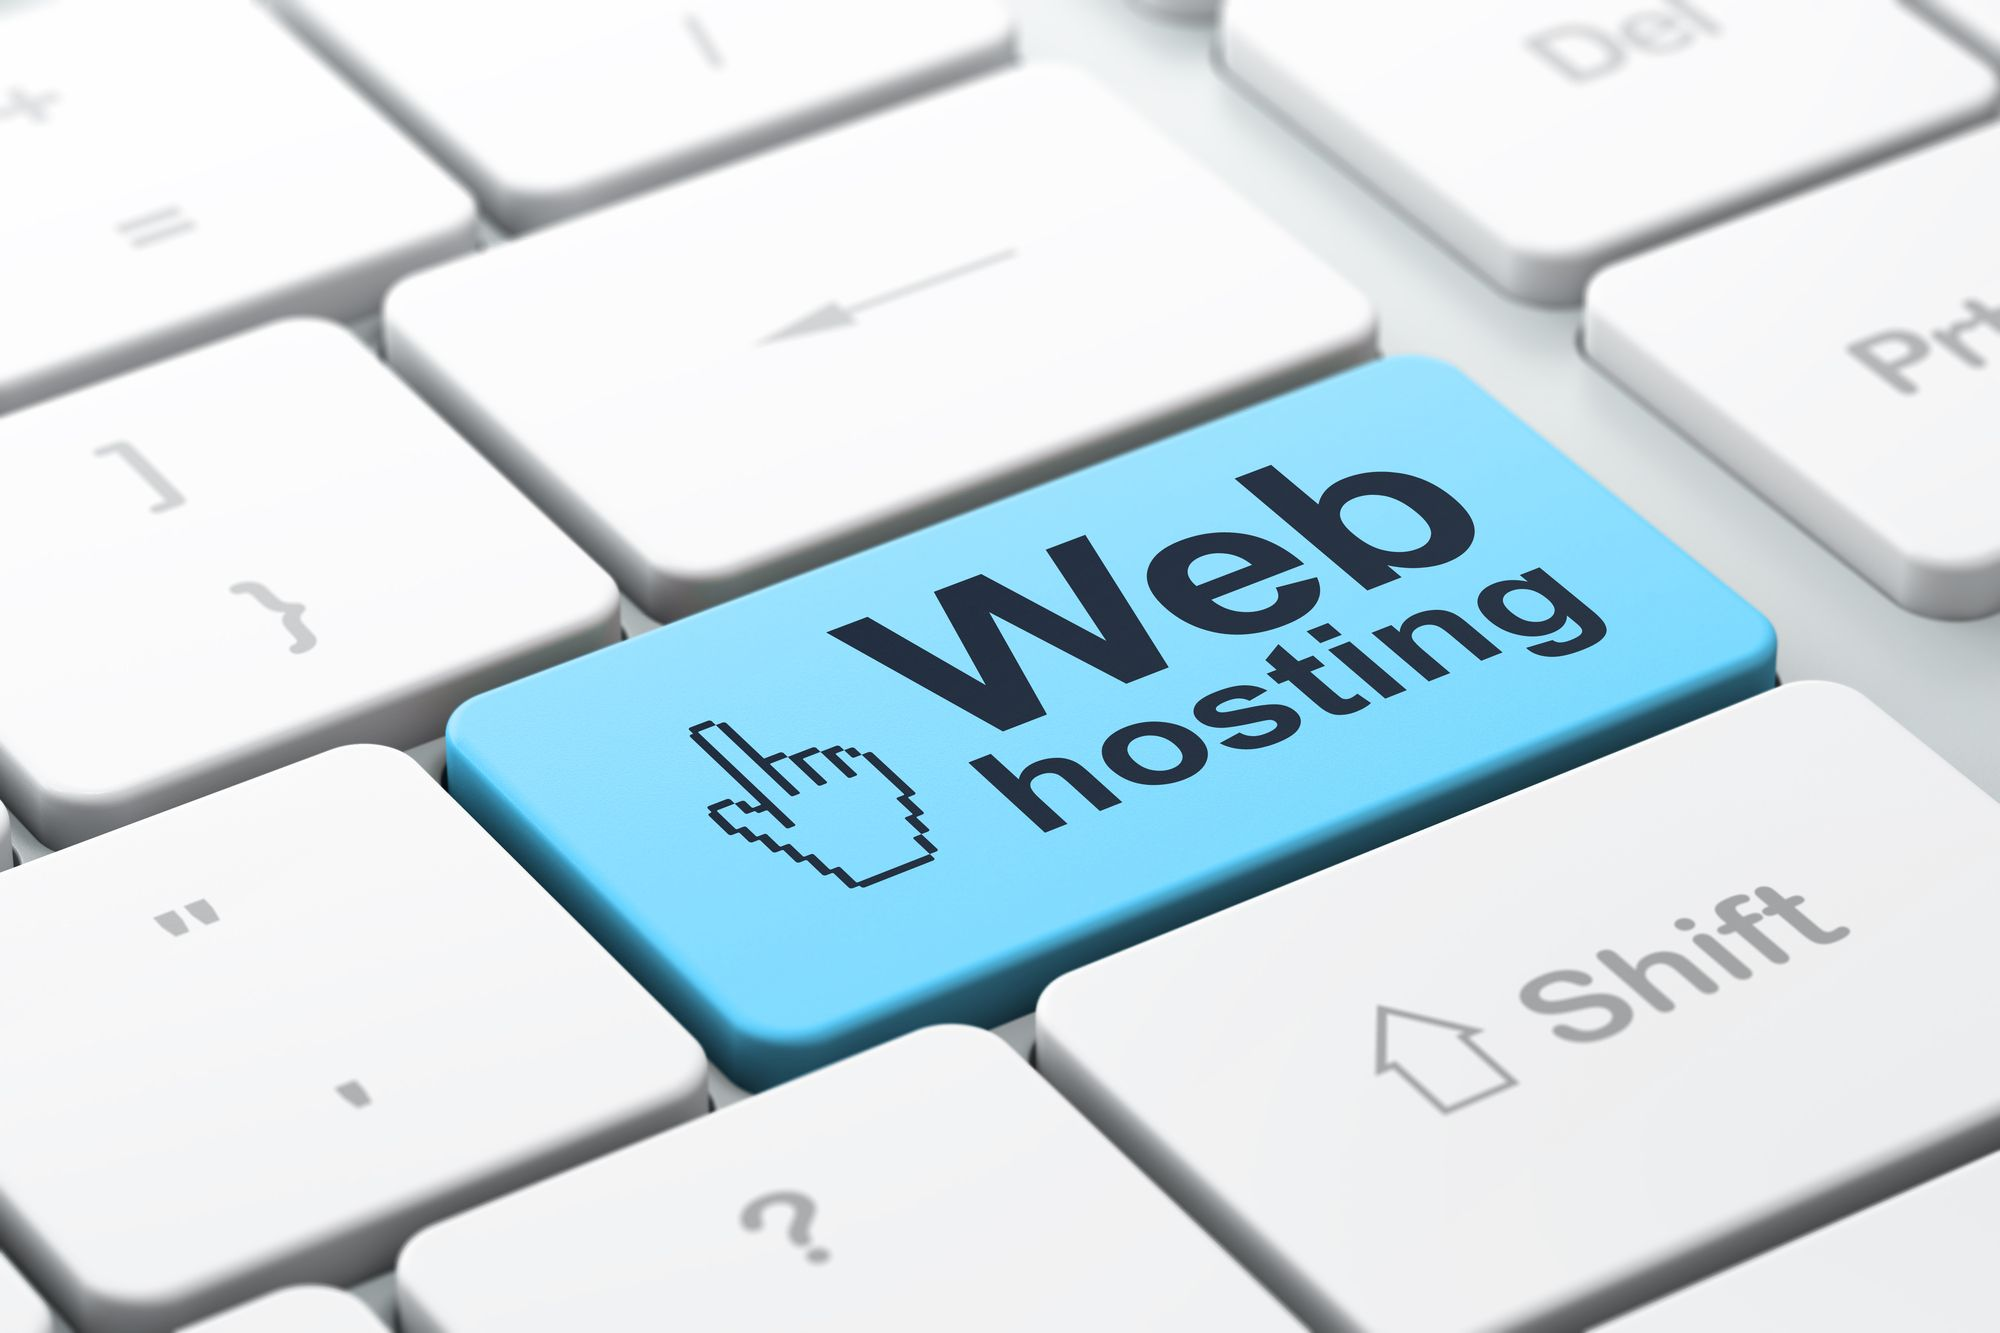 Choosing the best hosting provider comes next in the how to build a website guide